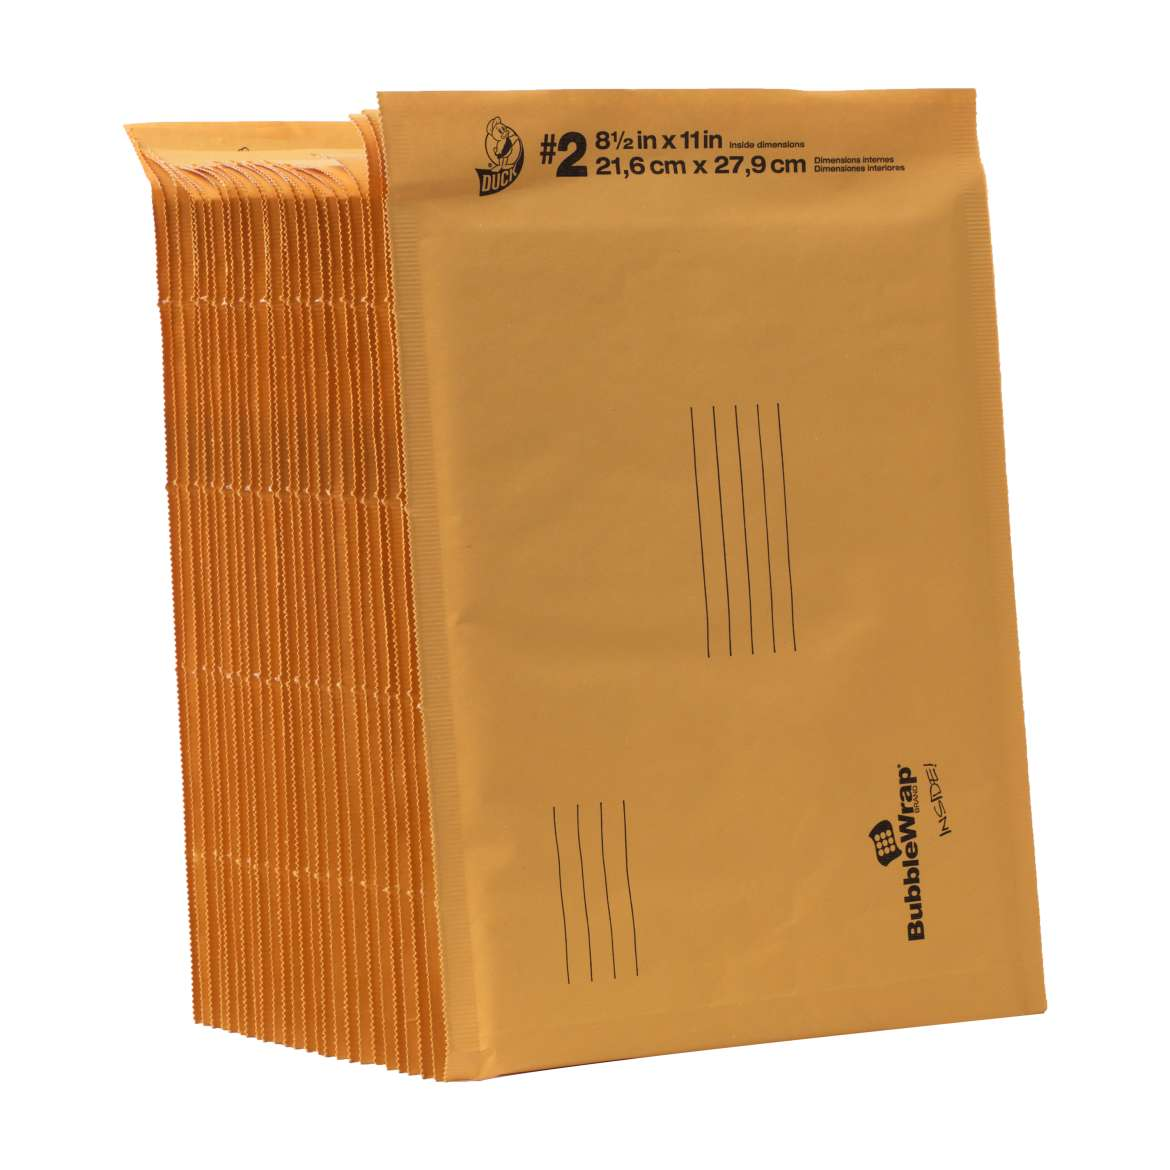 "Duck Brand #2 Bubble Wrap Cushioned Tan Kraft Envelope, 8.5"" x 11"", 25pk"